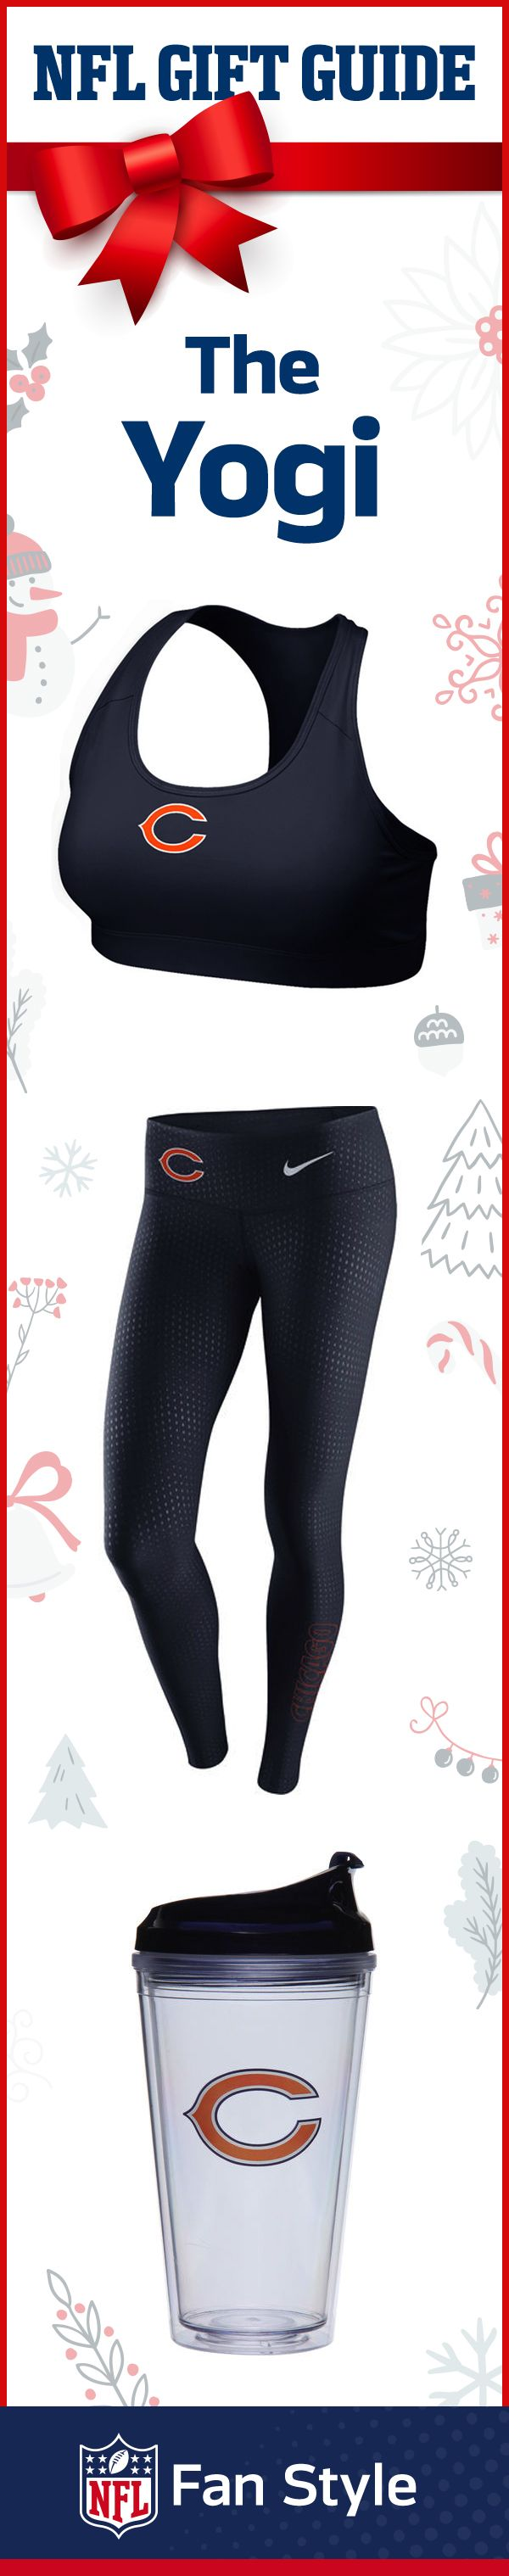 The Yogi: the holiday giftset for the woman who find inner peace while tailgating or while on a yoga mat. Help her find her center with some Chicago Bears performance apparel and a water bottle.